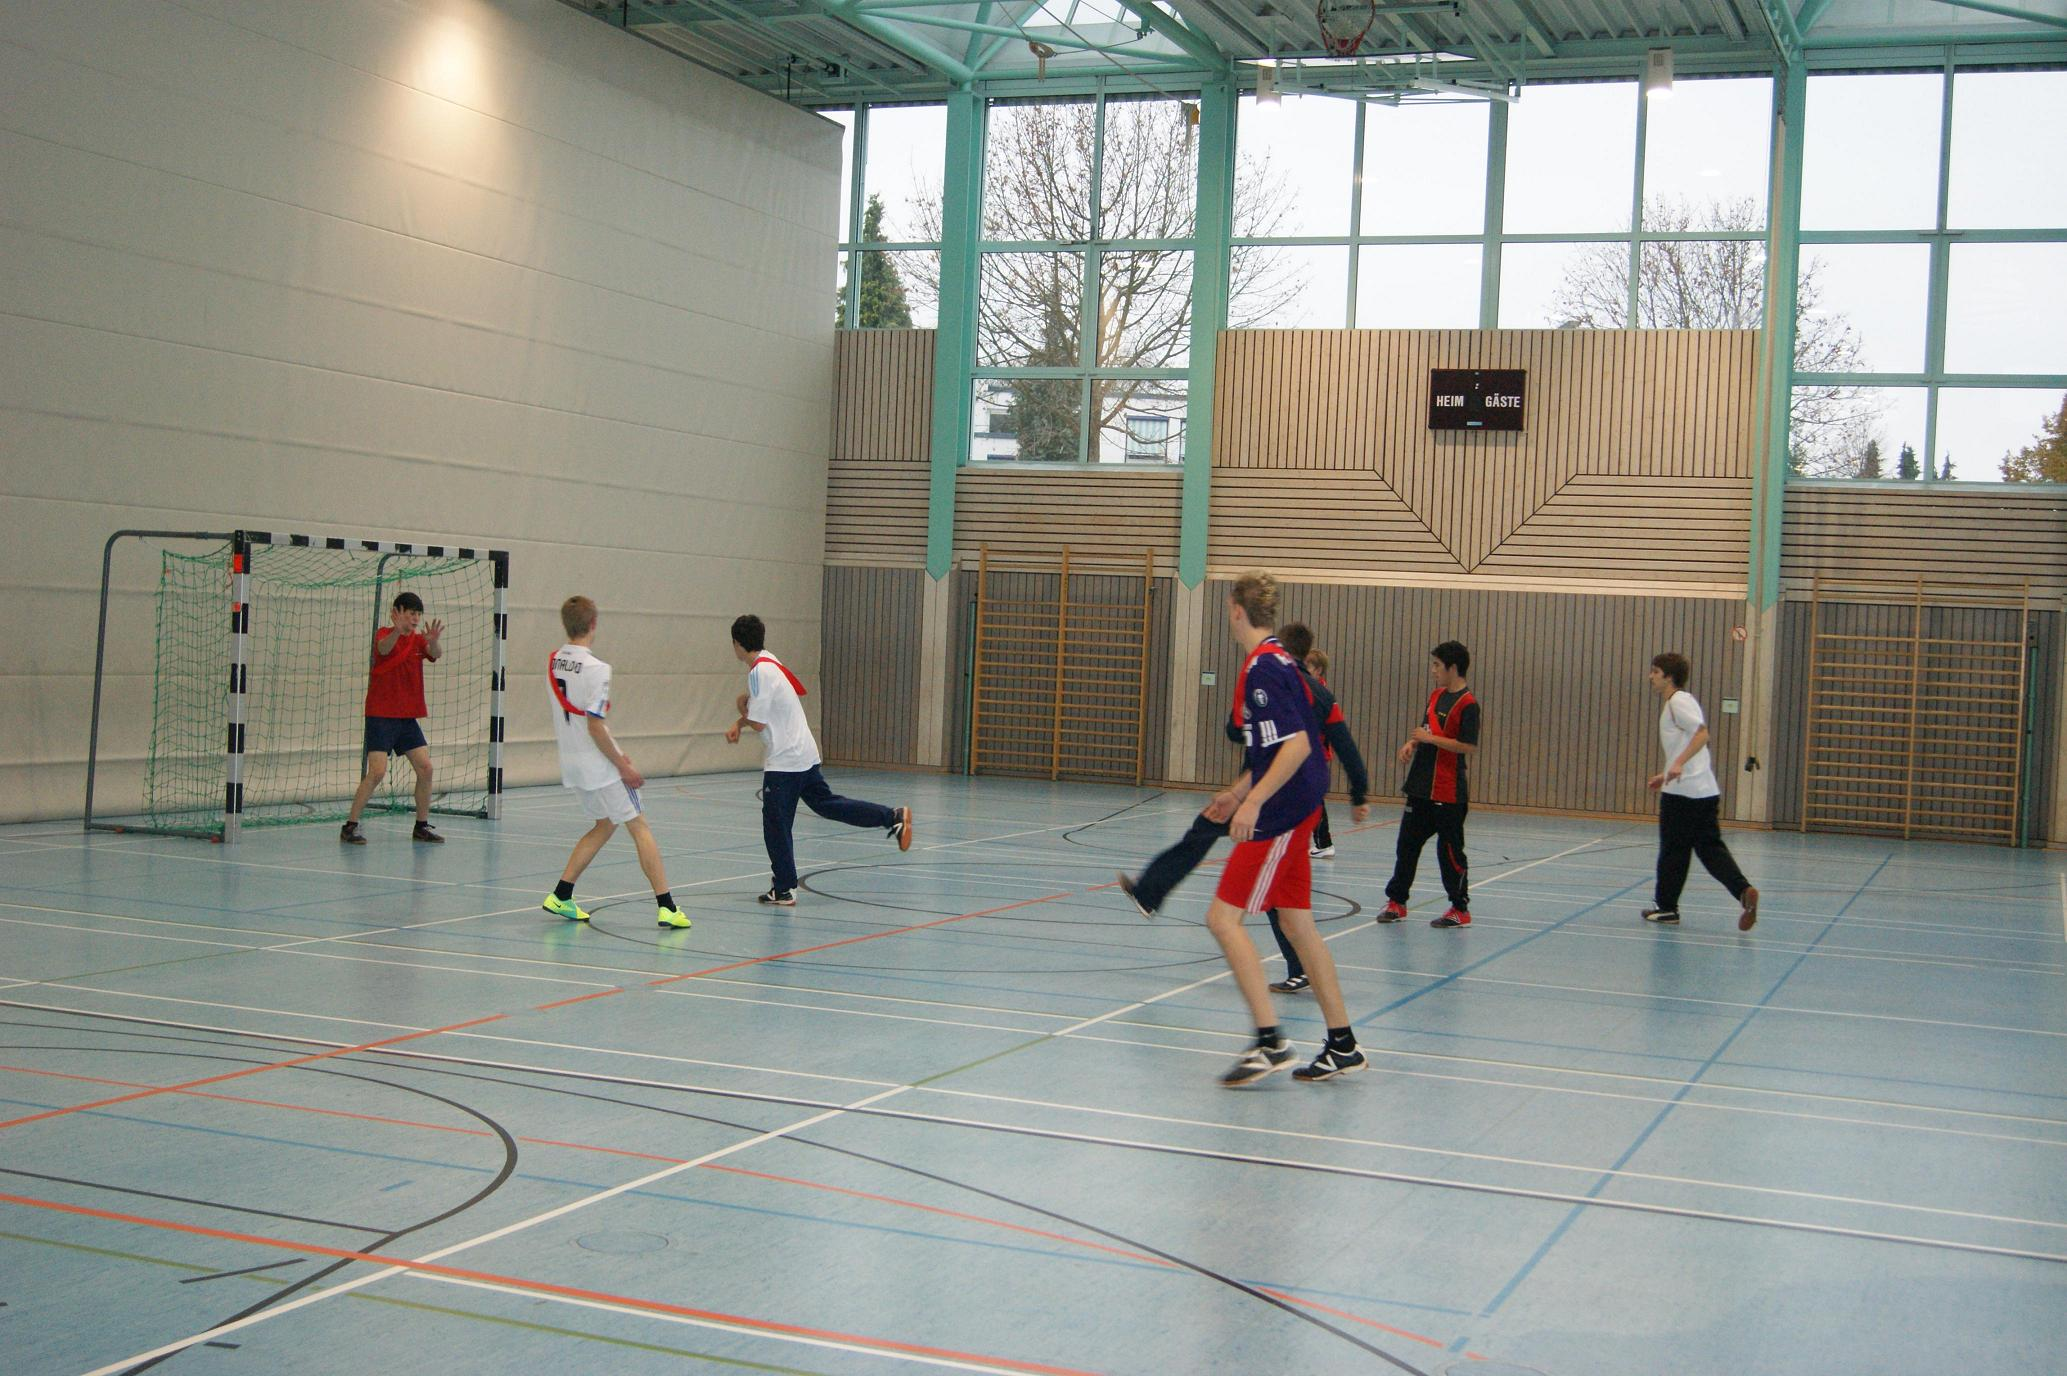 Kicken in der Halle